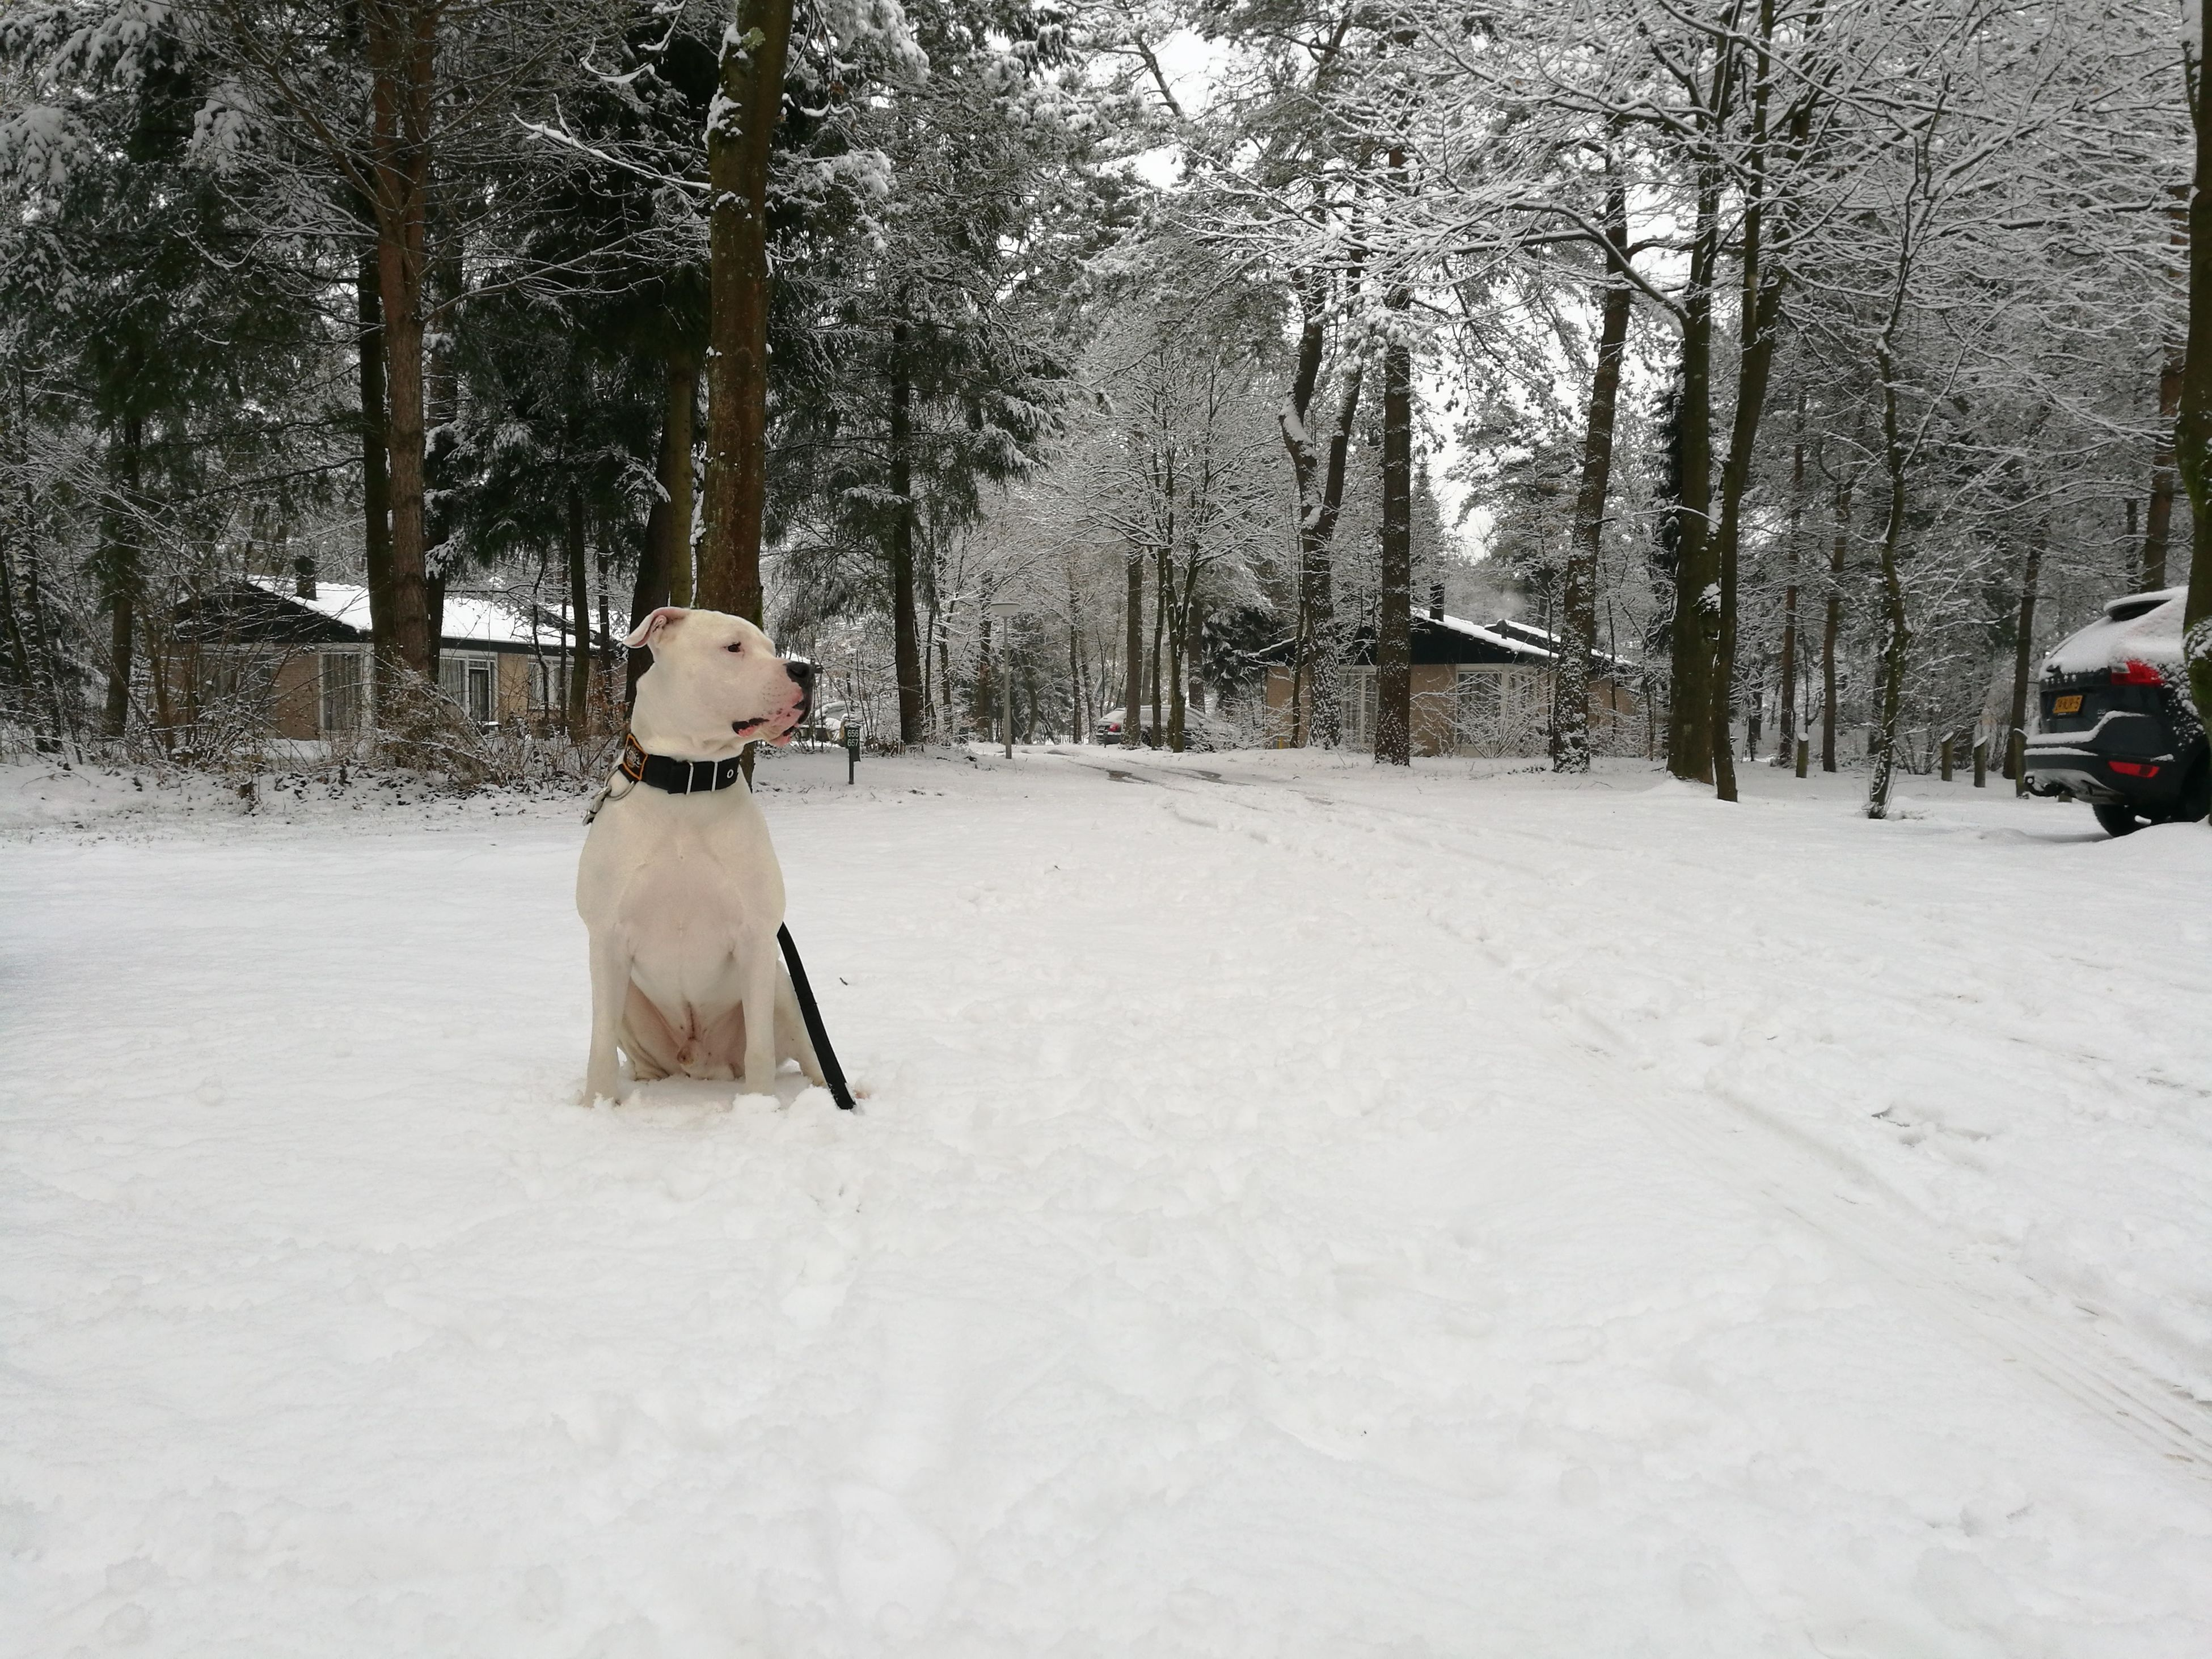 snow, winter, dog, cold temperature, pets, one animal, domestic animals, tree, white color, animal themes, mammal, weather, nature, outdoors, day, no people, bare tree, sitting, beauty in nature